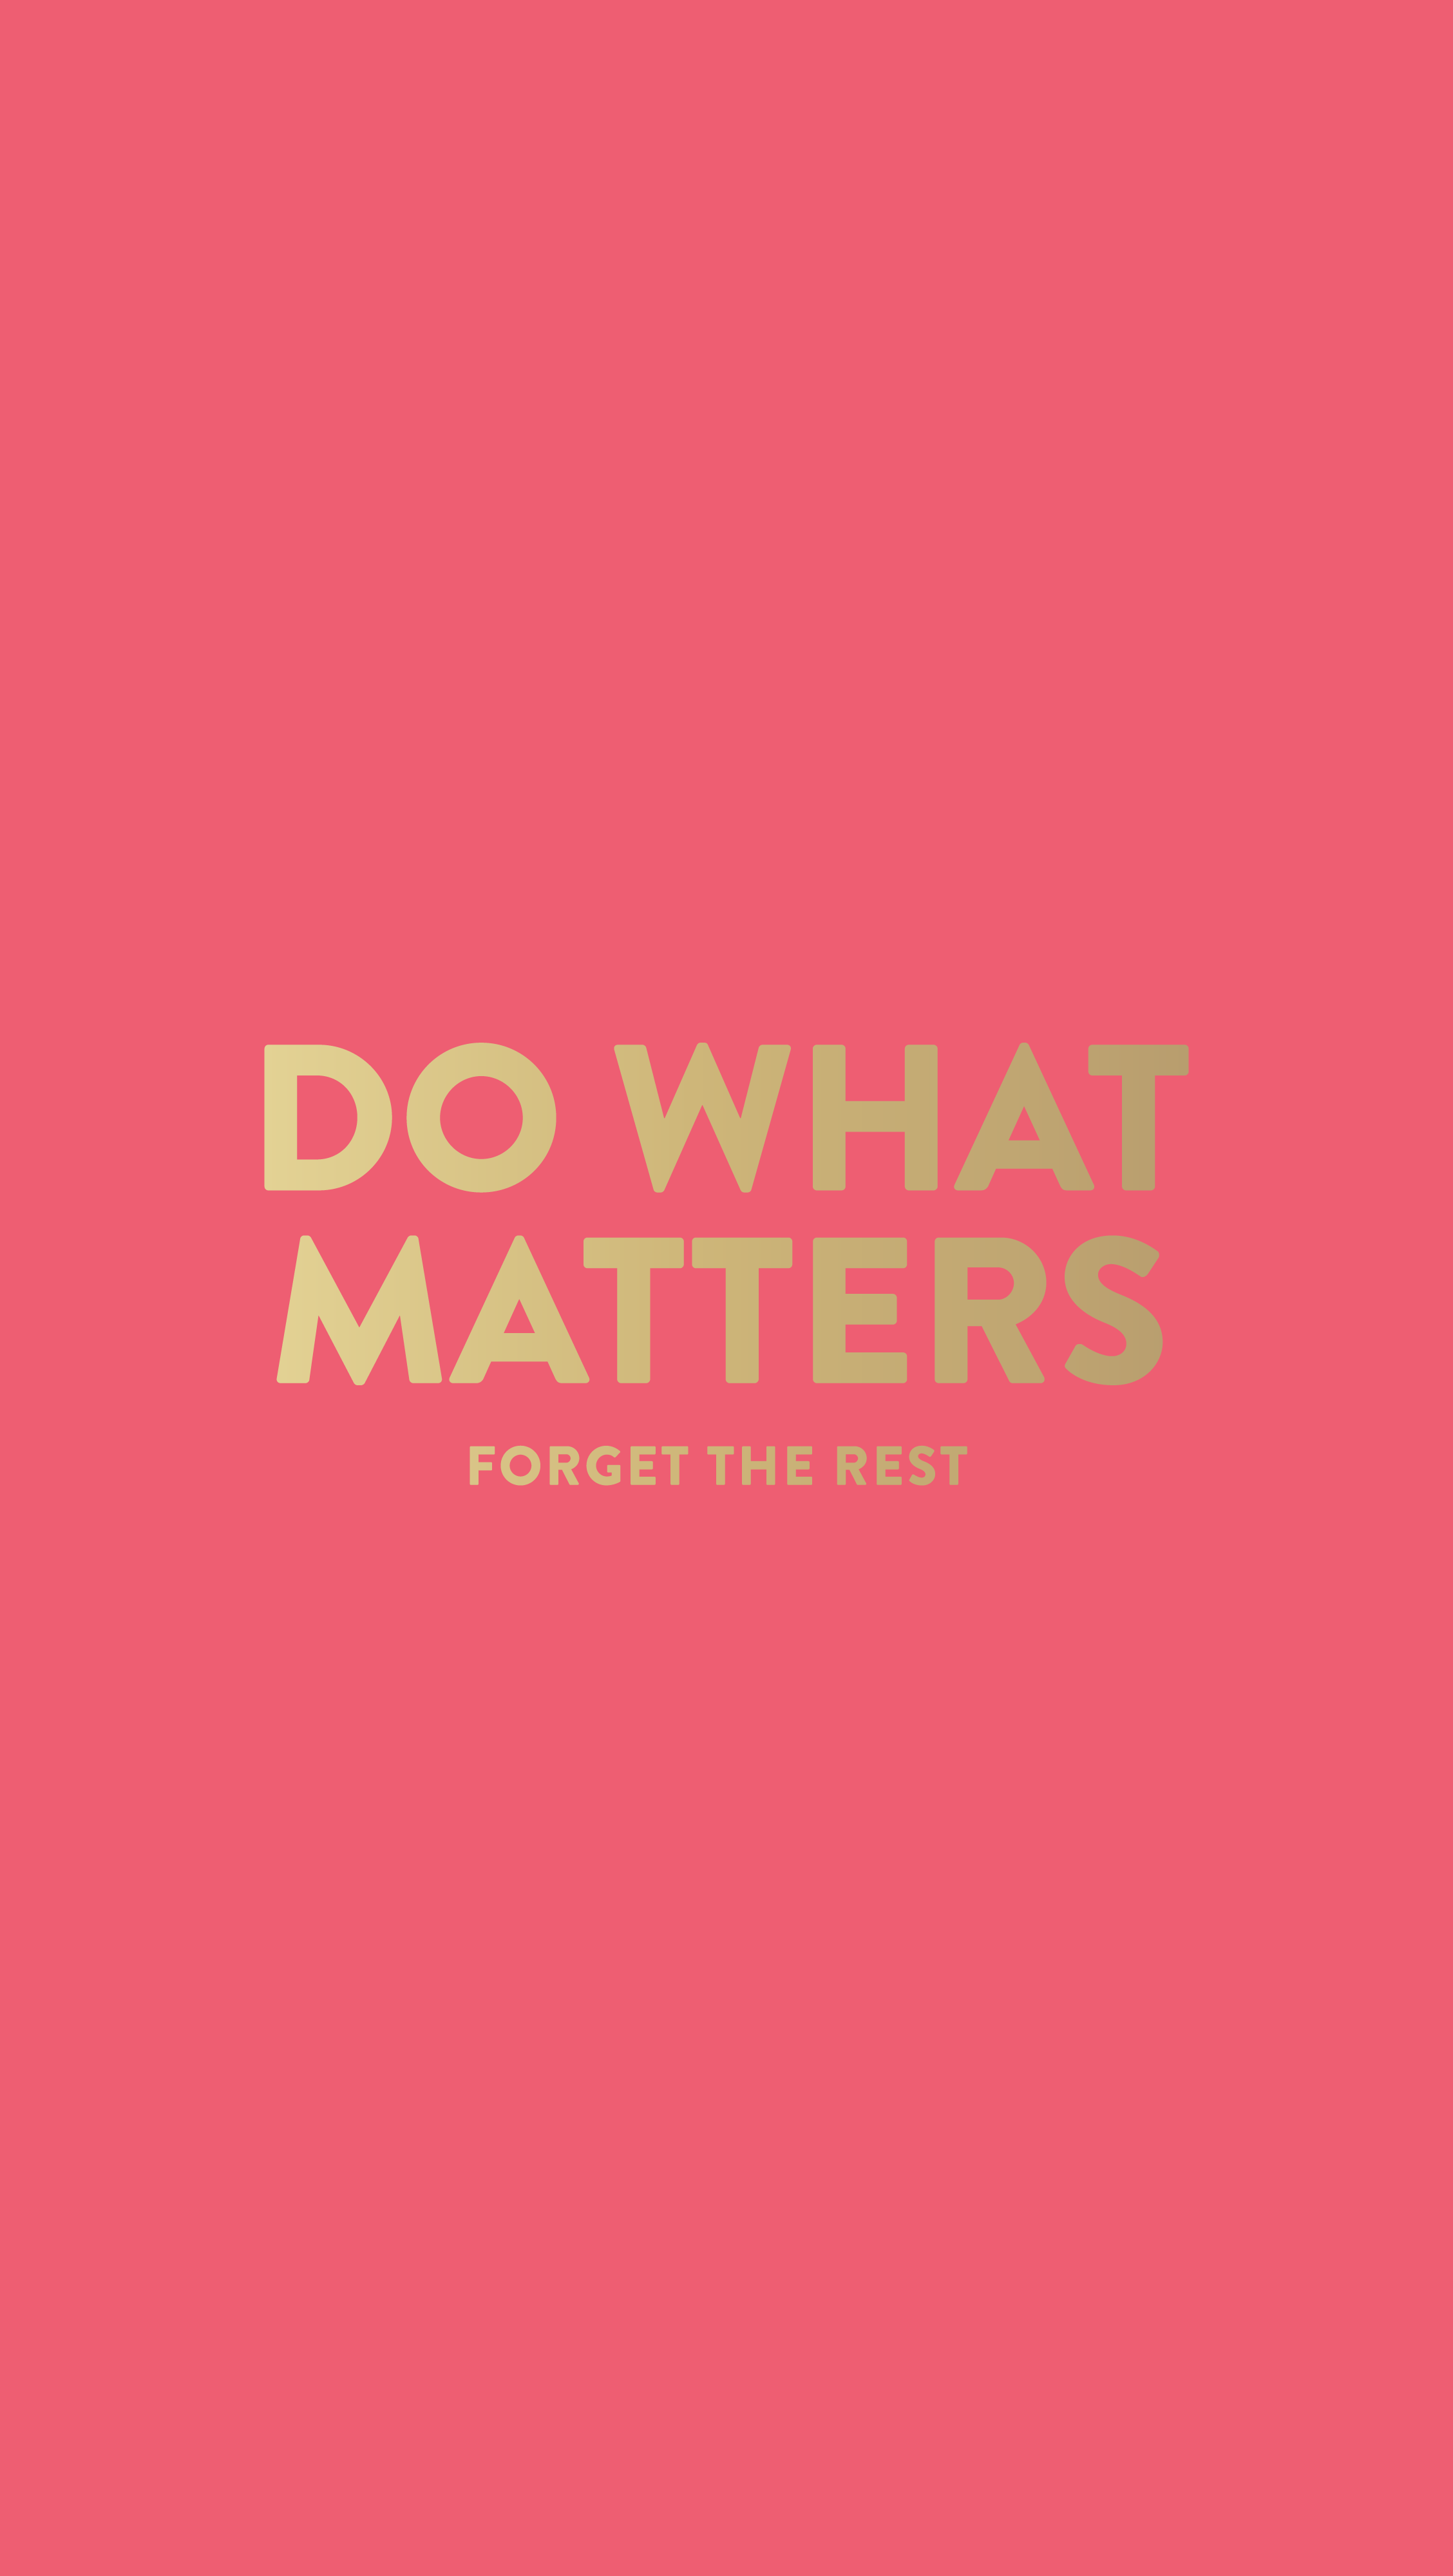 Do What Matters iPhone wallpaper via emilyley